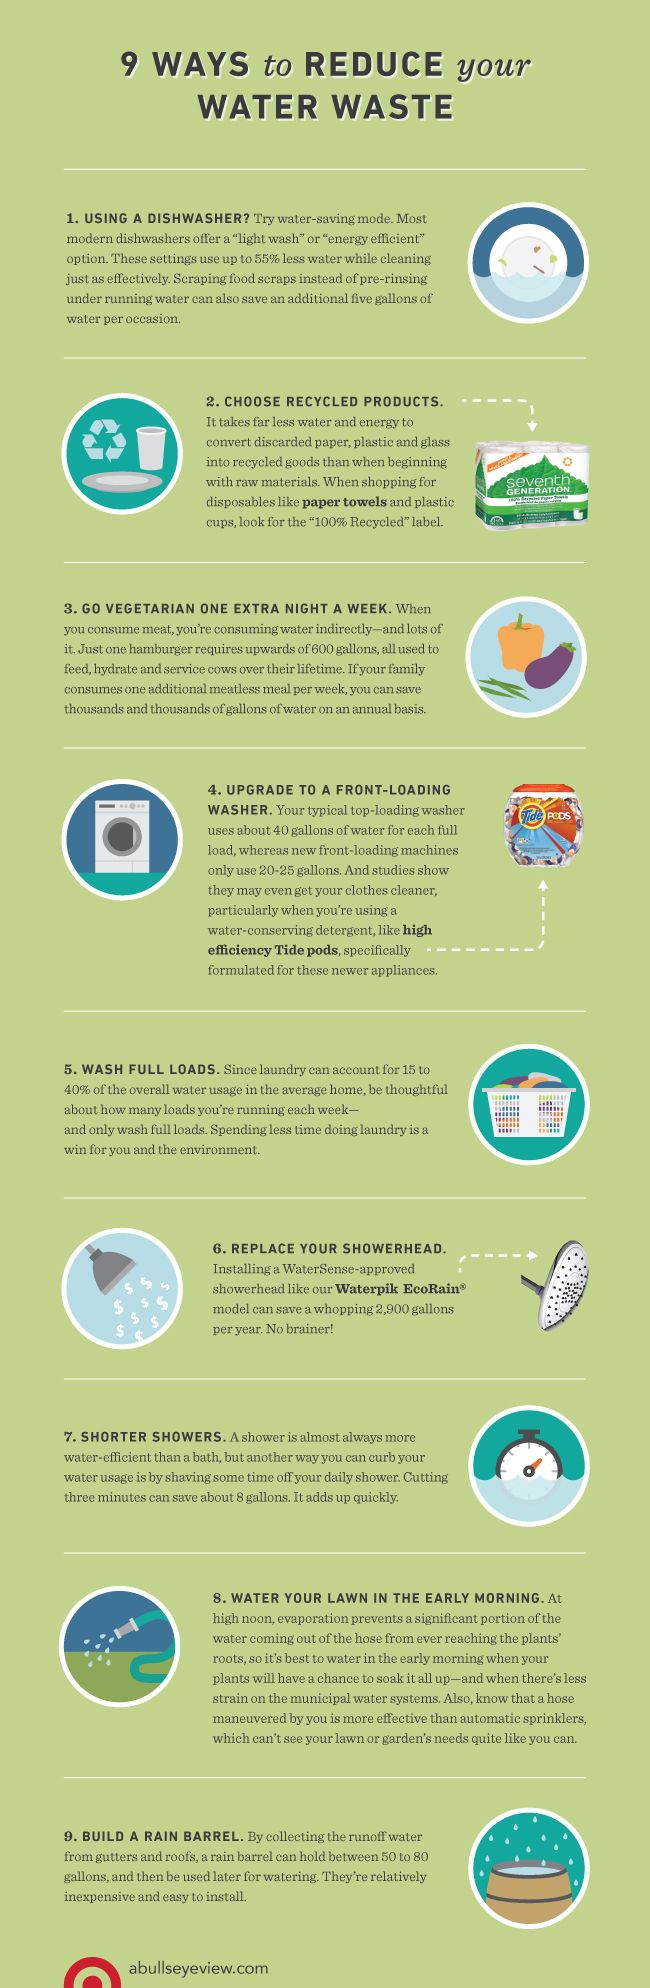 These Are Some Great Tips On How You Can Save Water In Your Home